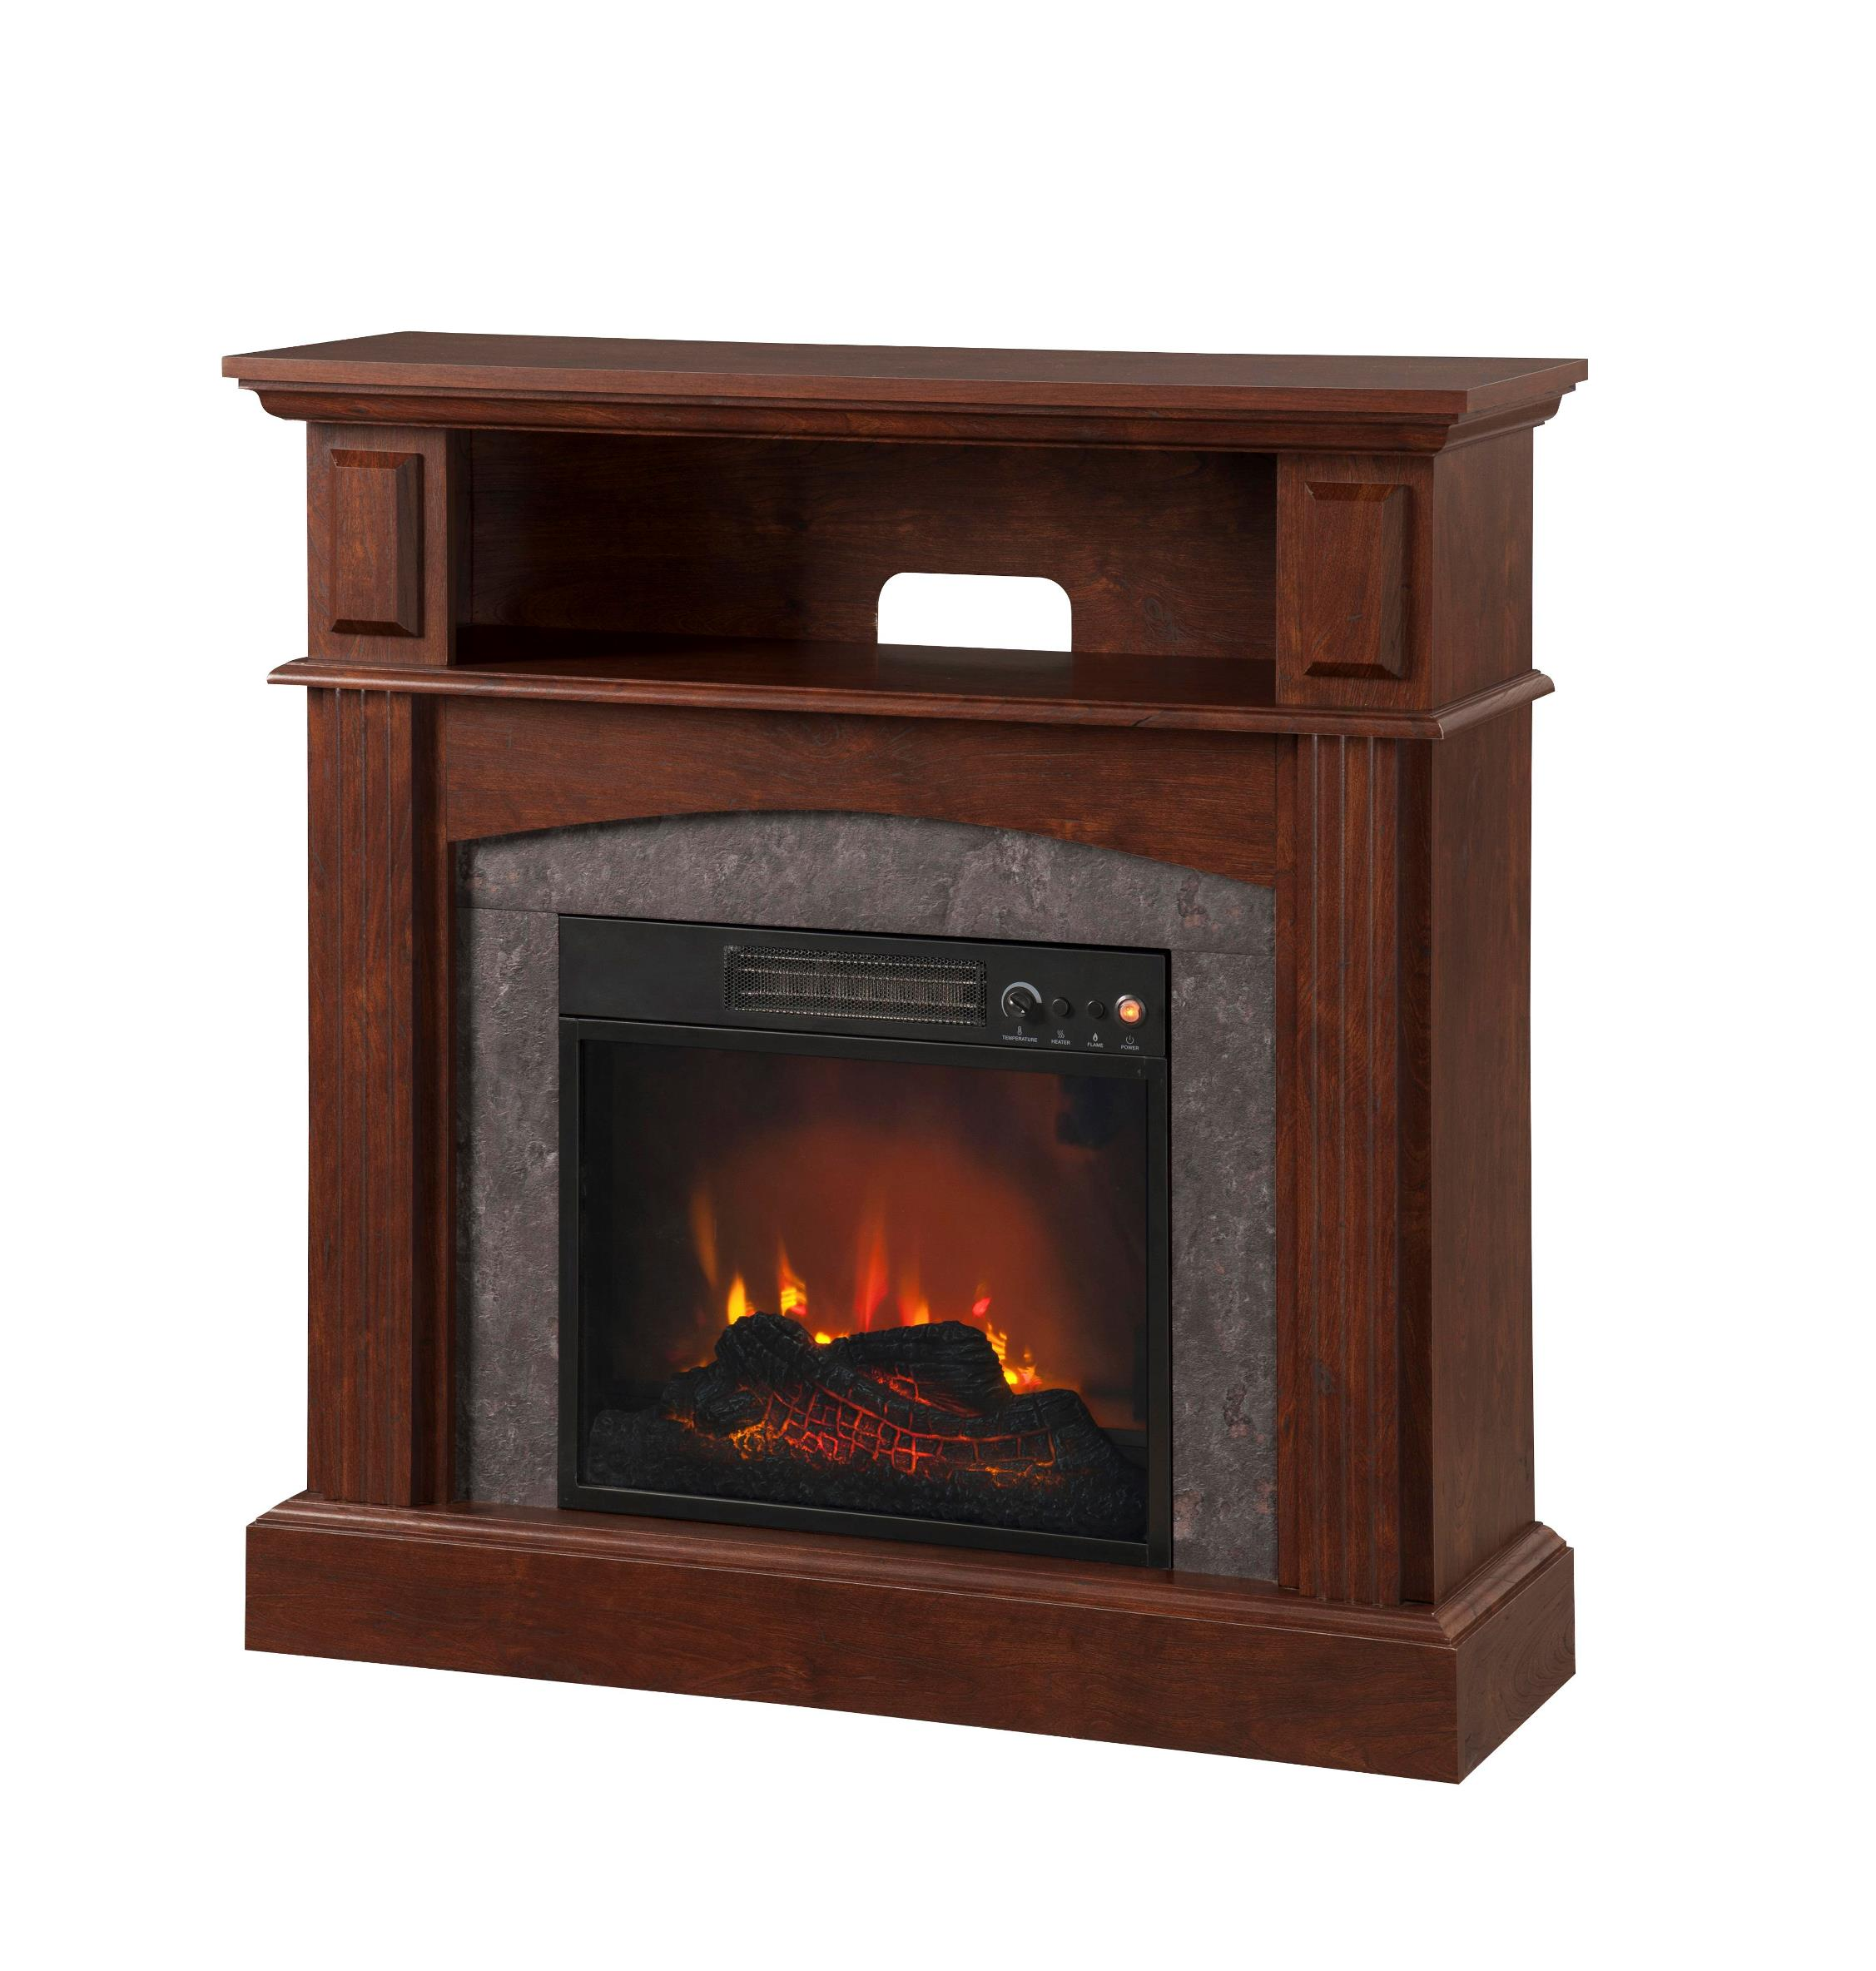 Sale On Electric Fireplaces Essential Home Cranford Electric Fireplace | Shop Your Way